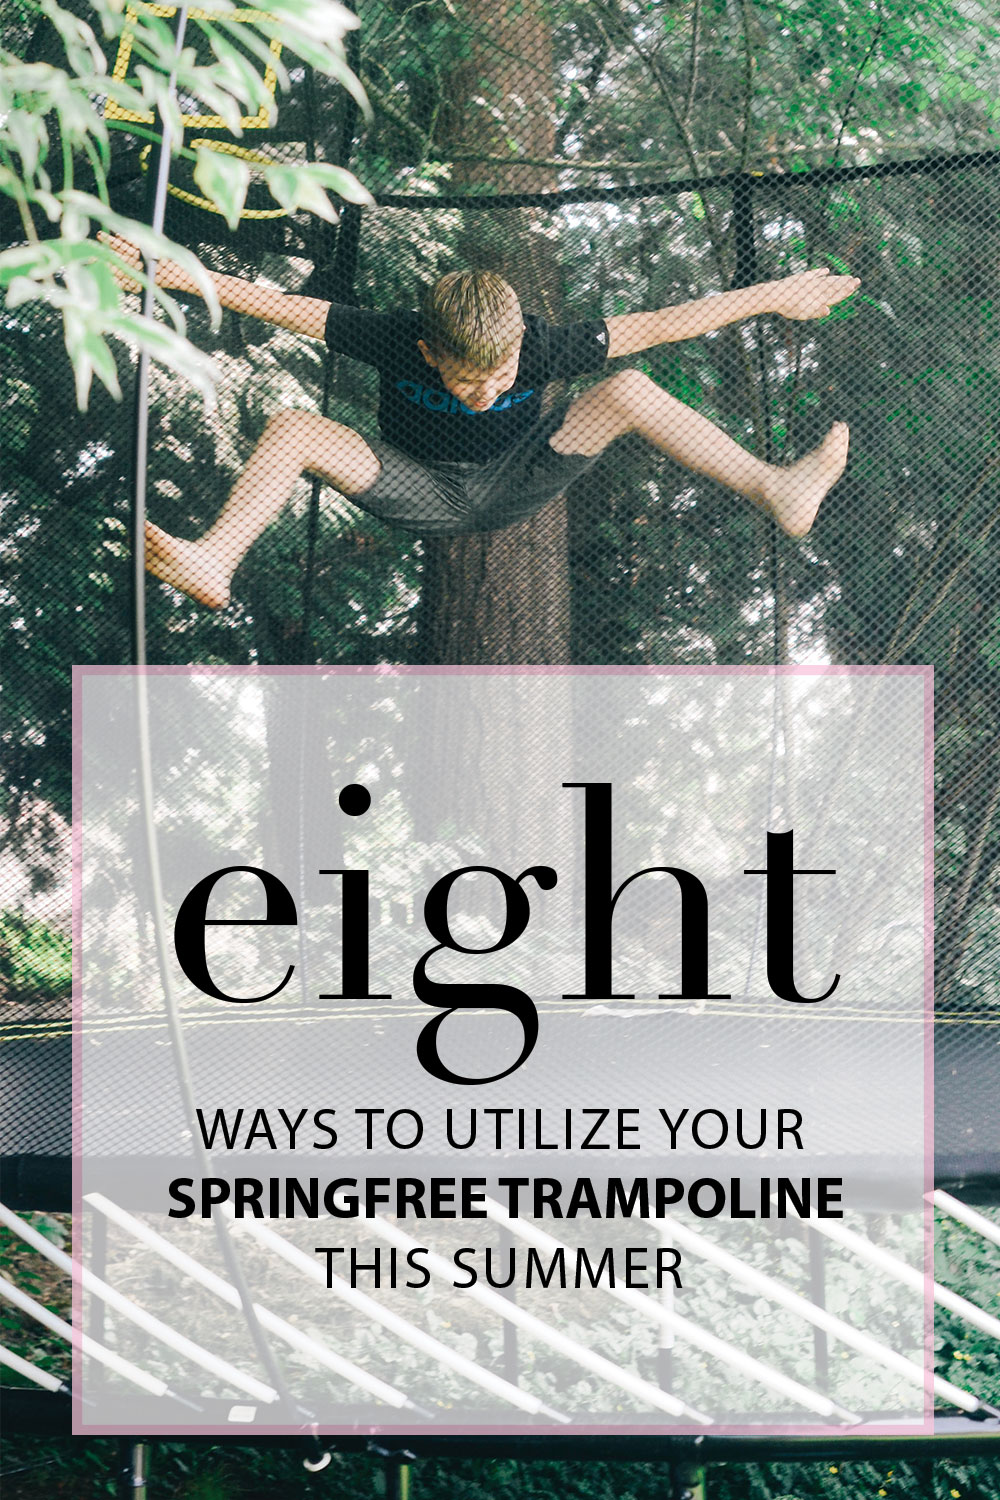 8 Ways to Utilize Your Springfree Trampoline this Summer